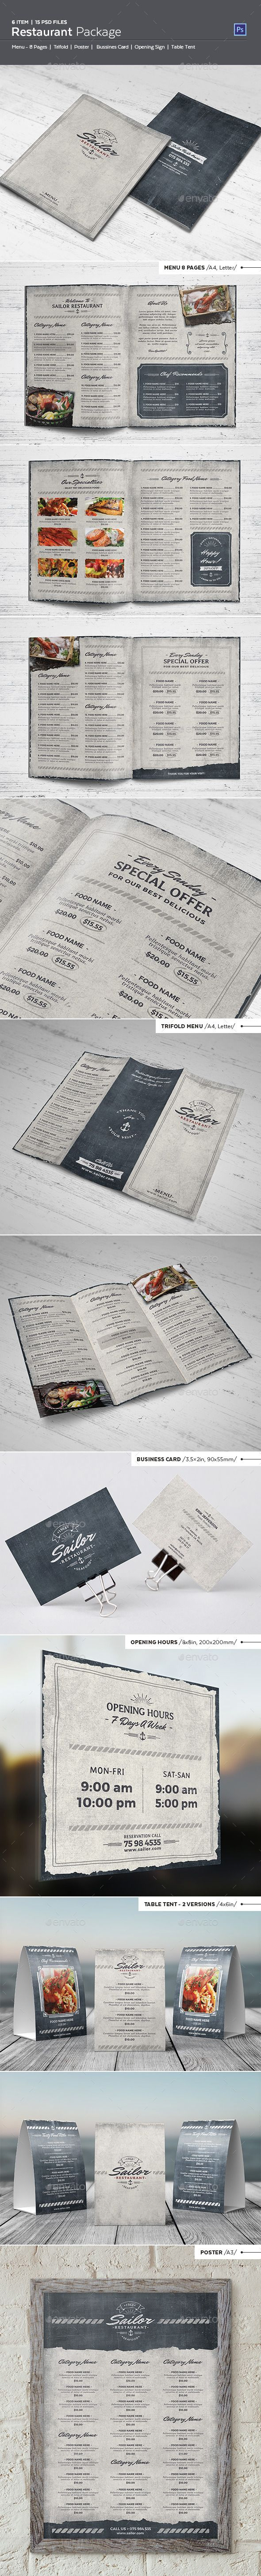 Sailor Restaurant Package | Restaurante, Menus restaurantes y ...